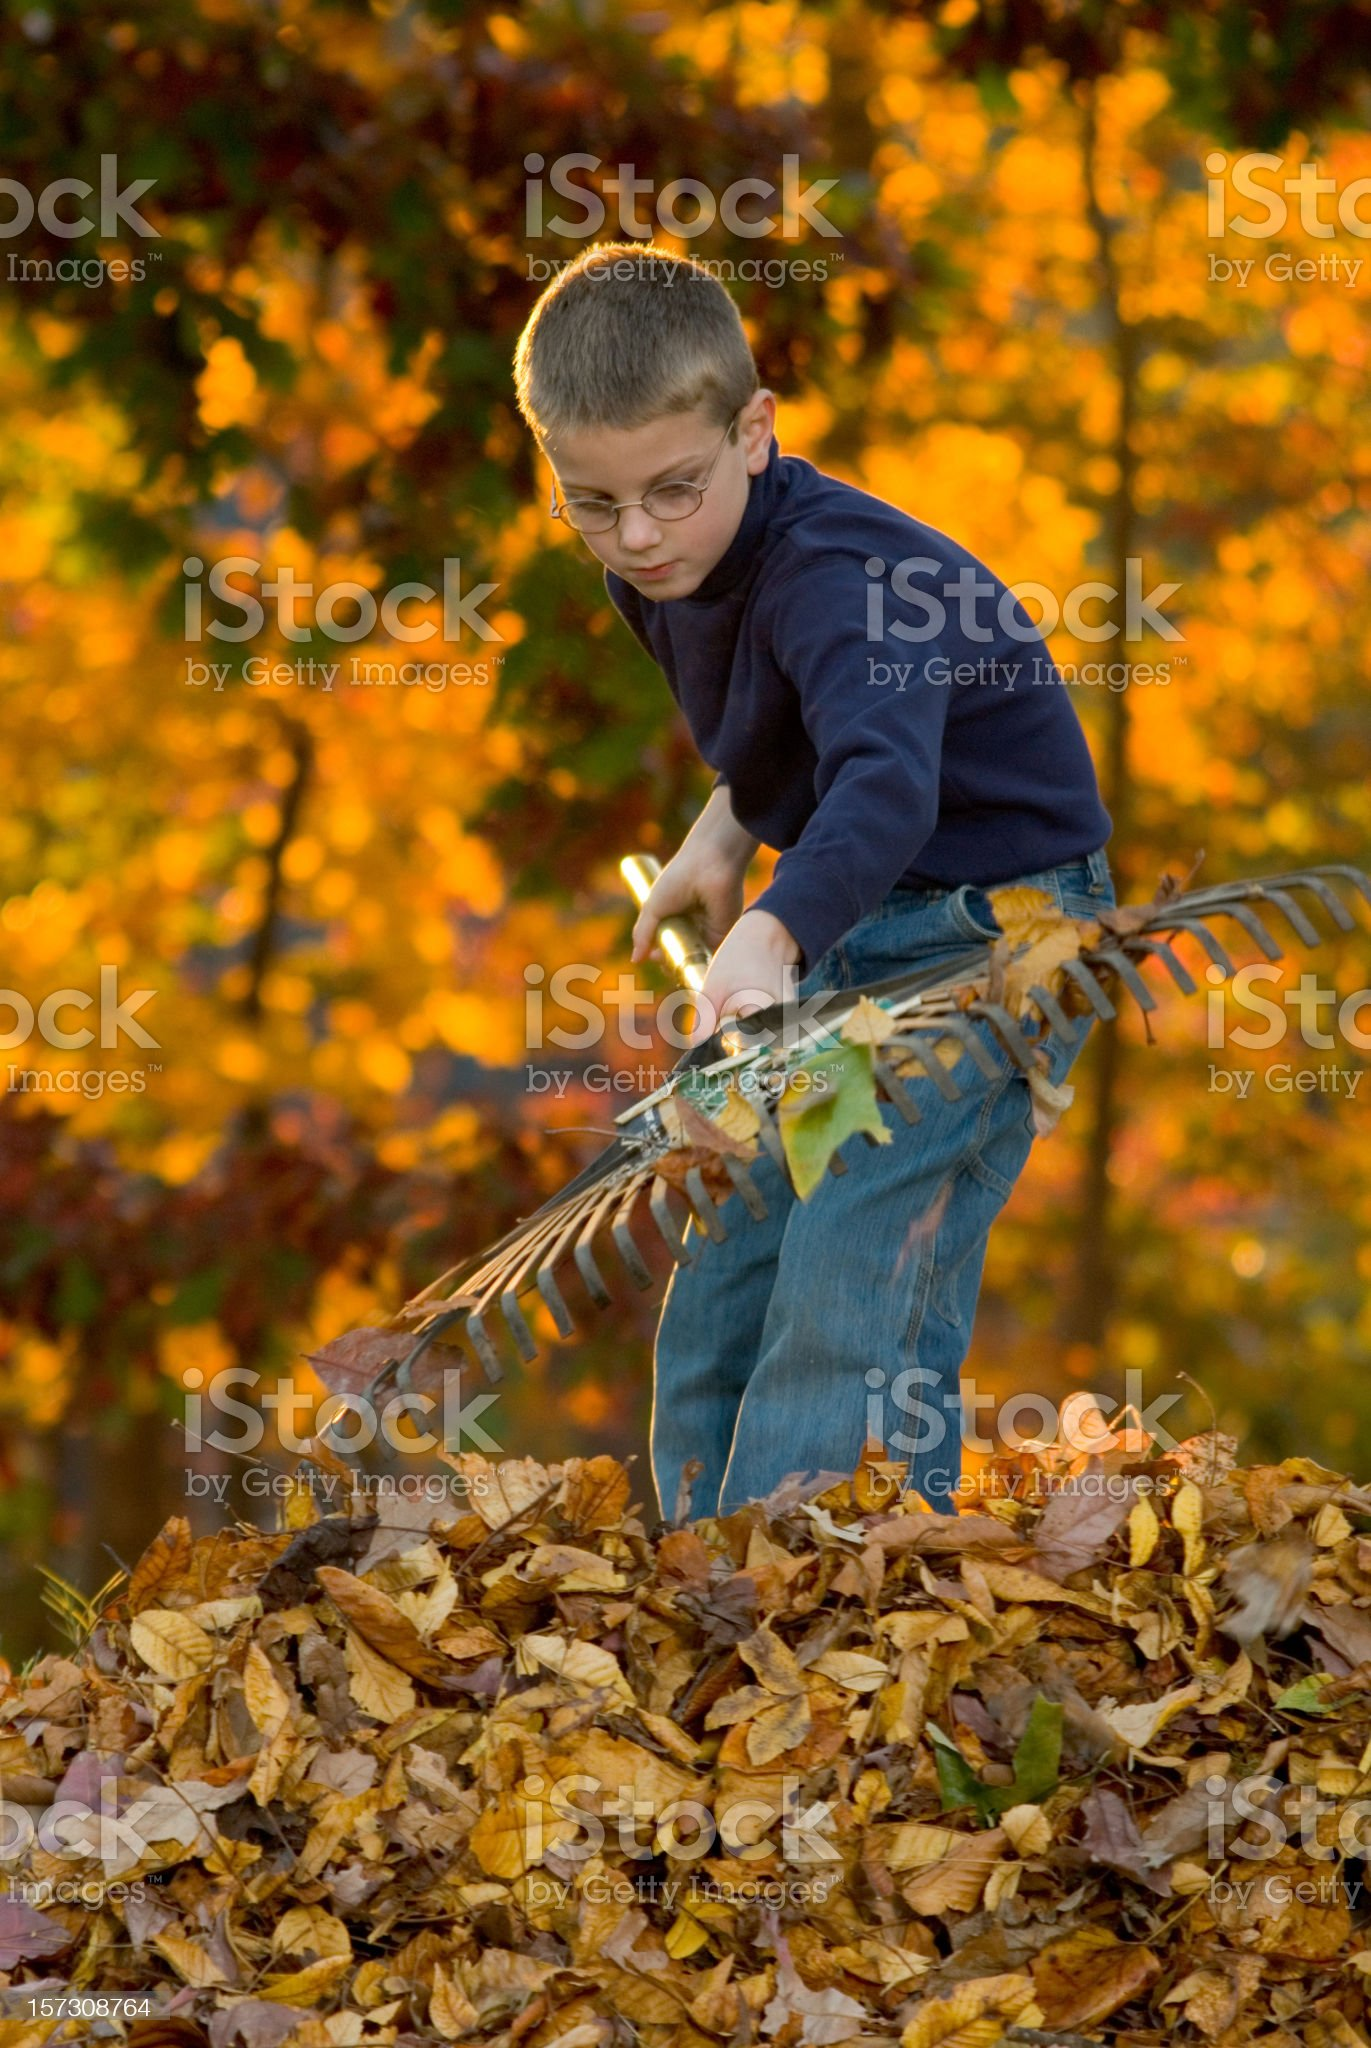 Boy Raking Leaves 2 royalty-free stock photo